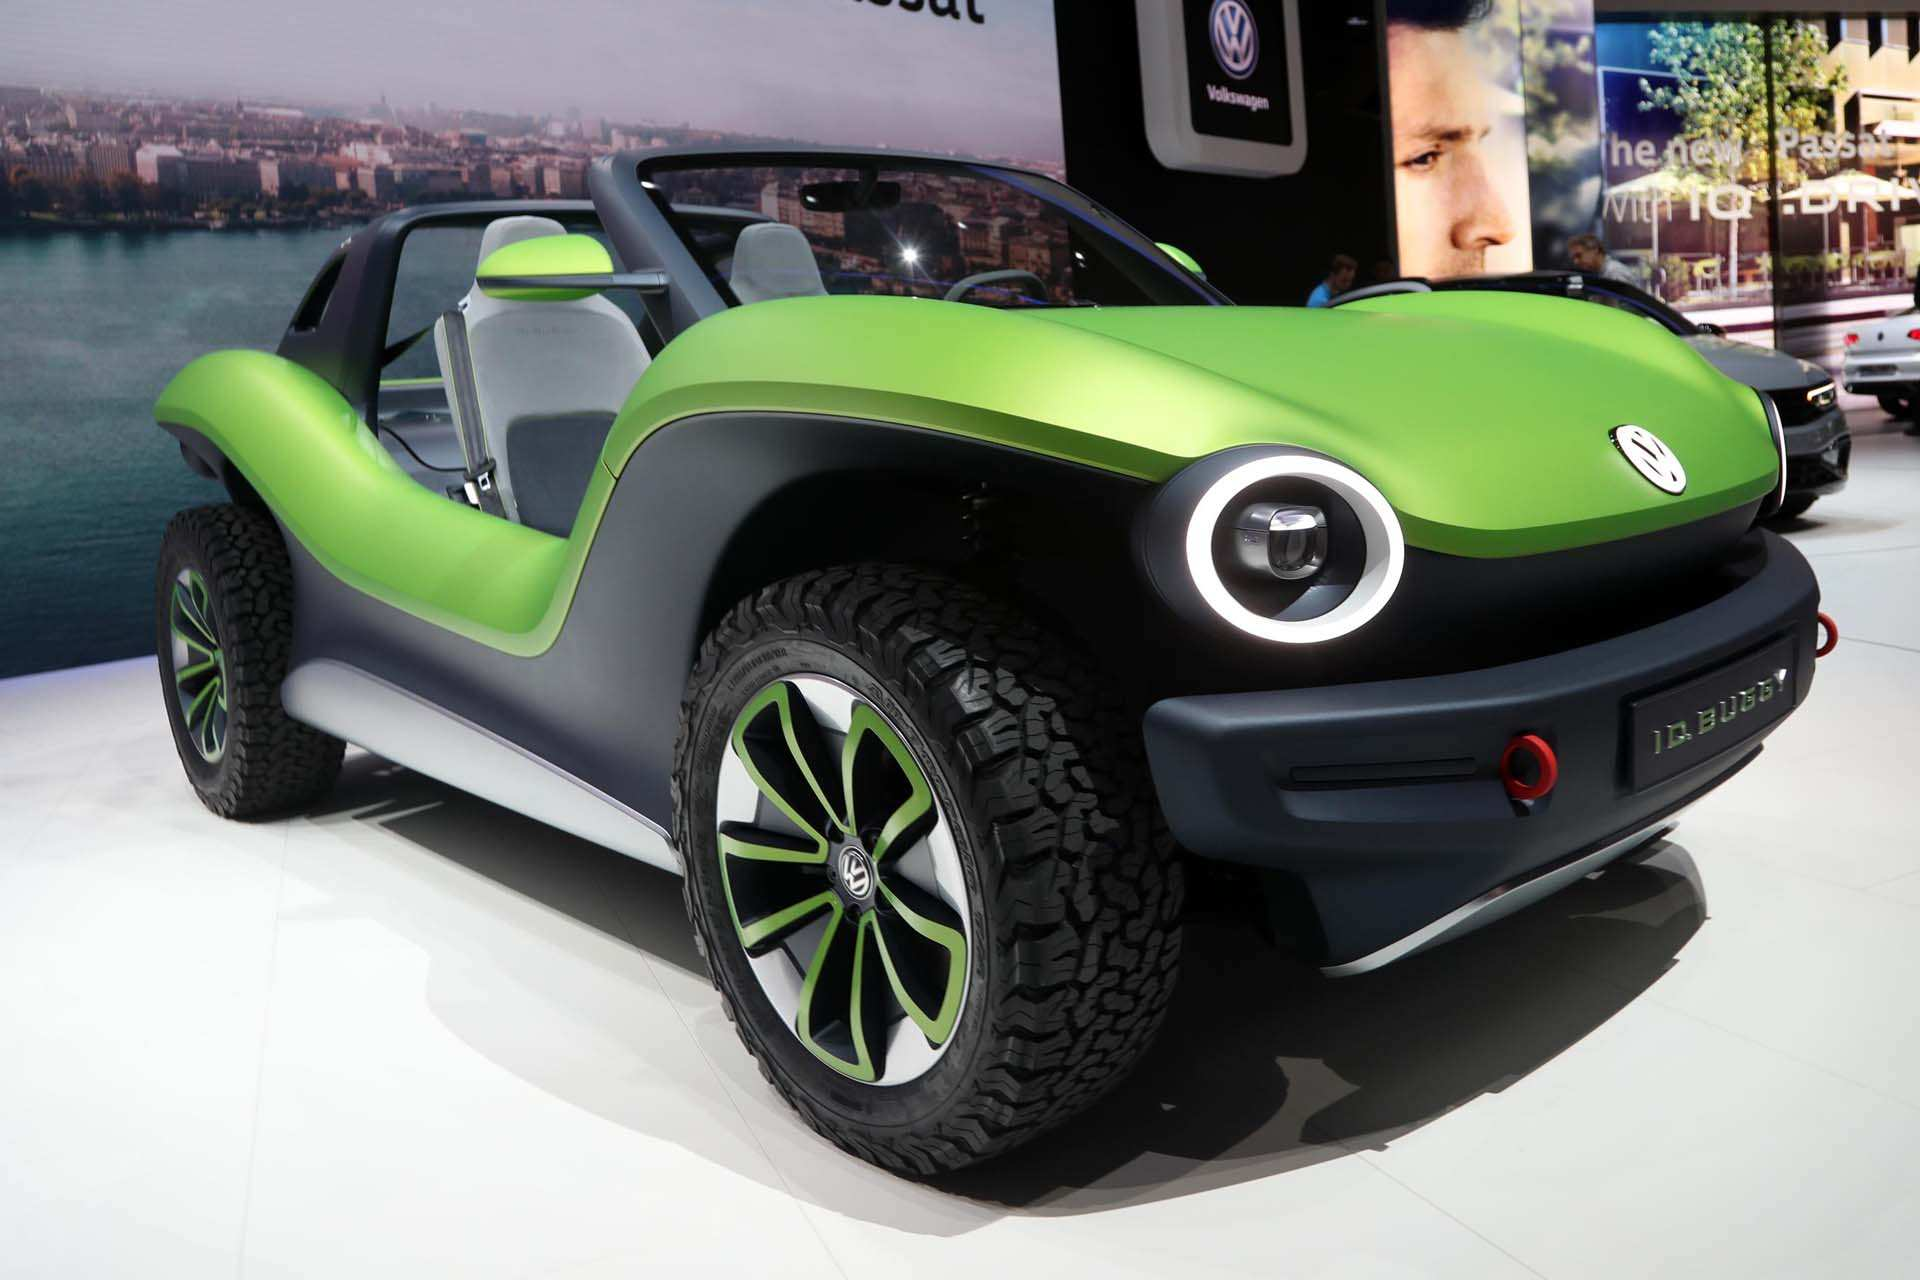 31 Gallery of 2020 Volkswagen Dune Buggy Specs and Review with 2020 Volkswagen Dune Buggy